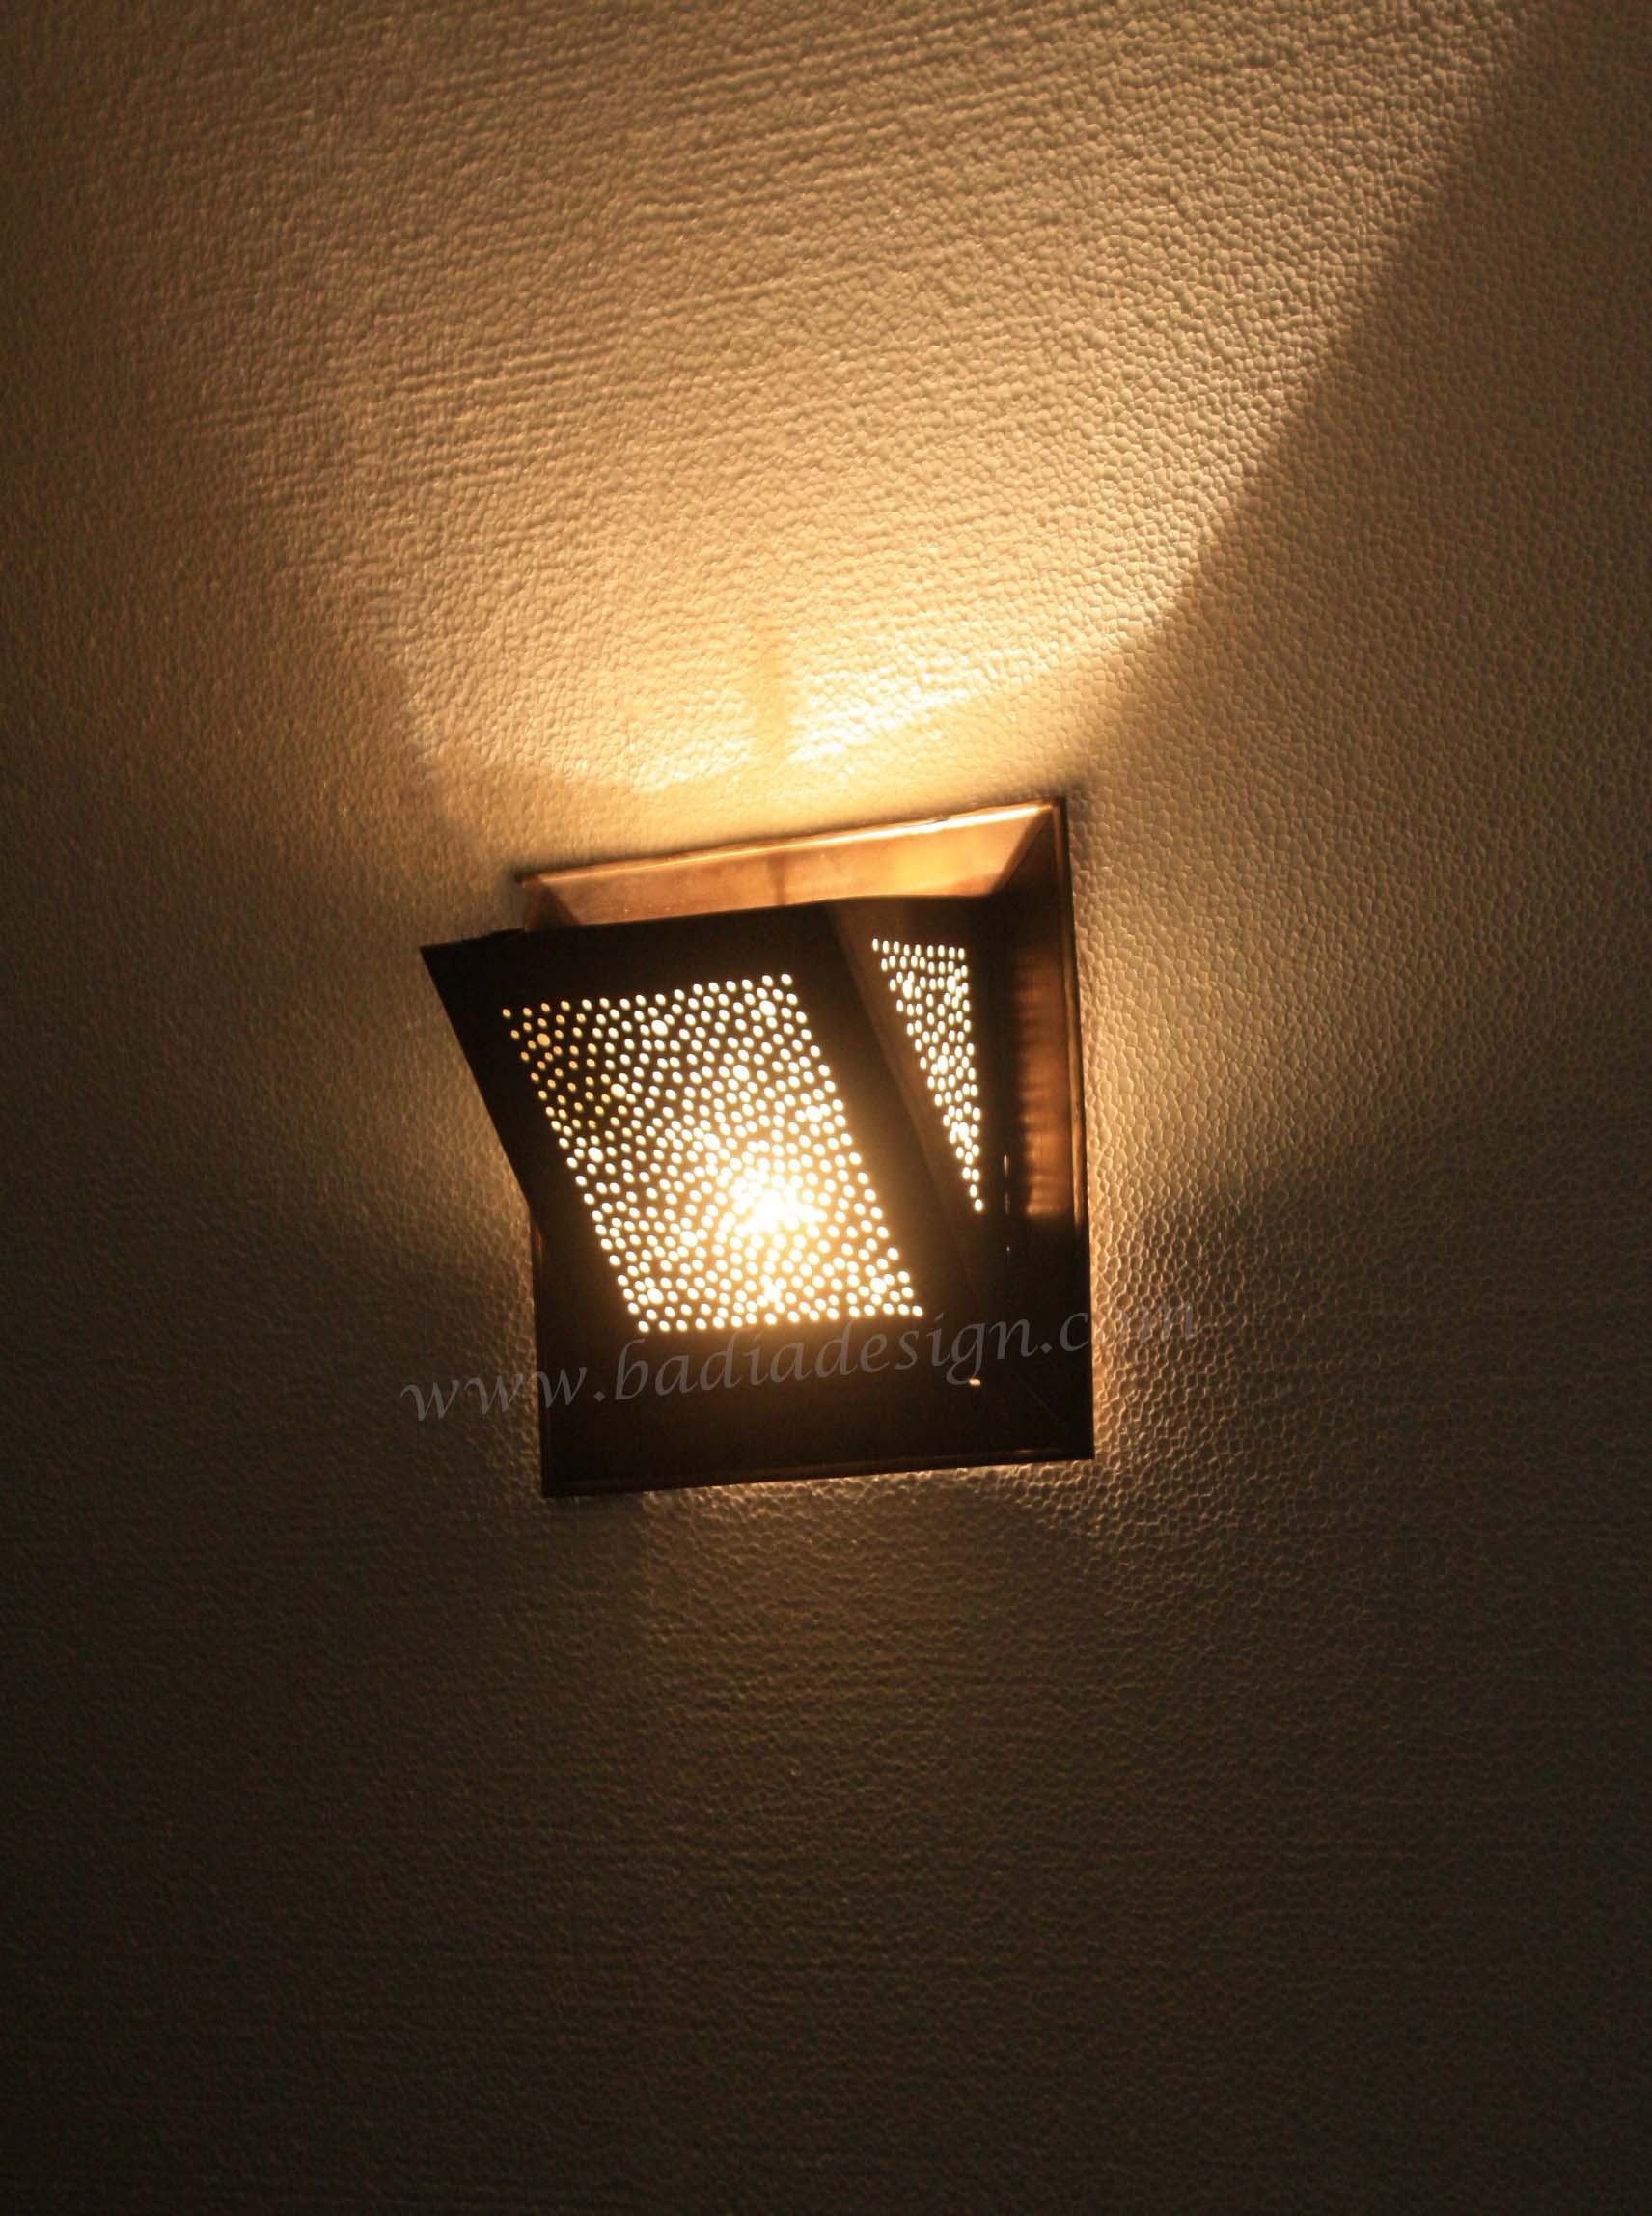 small-moroccan-brass-wall-sconce-wl188-2.jpg